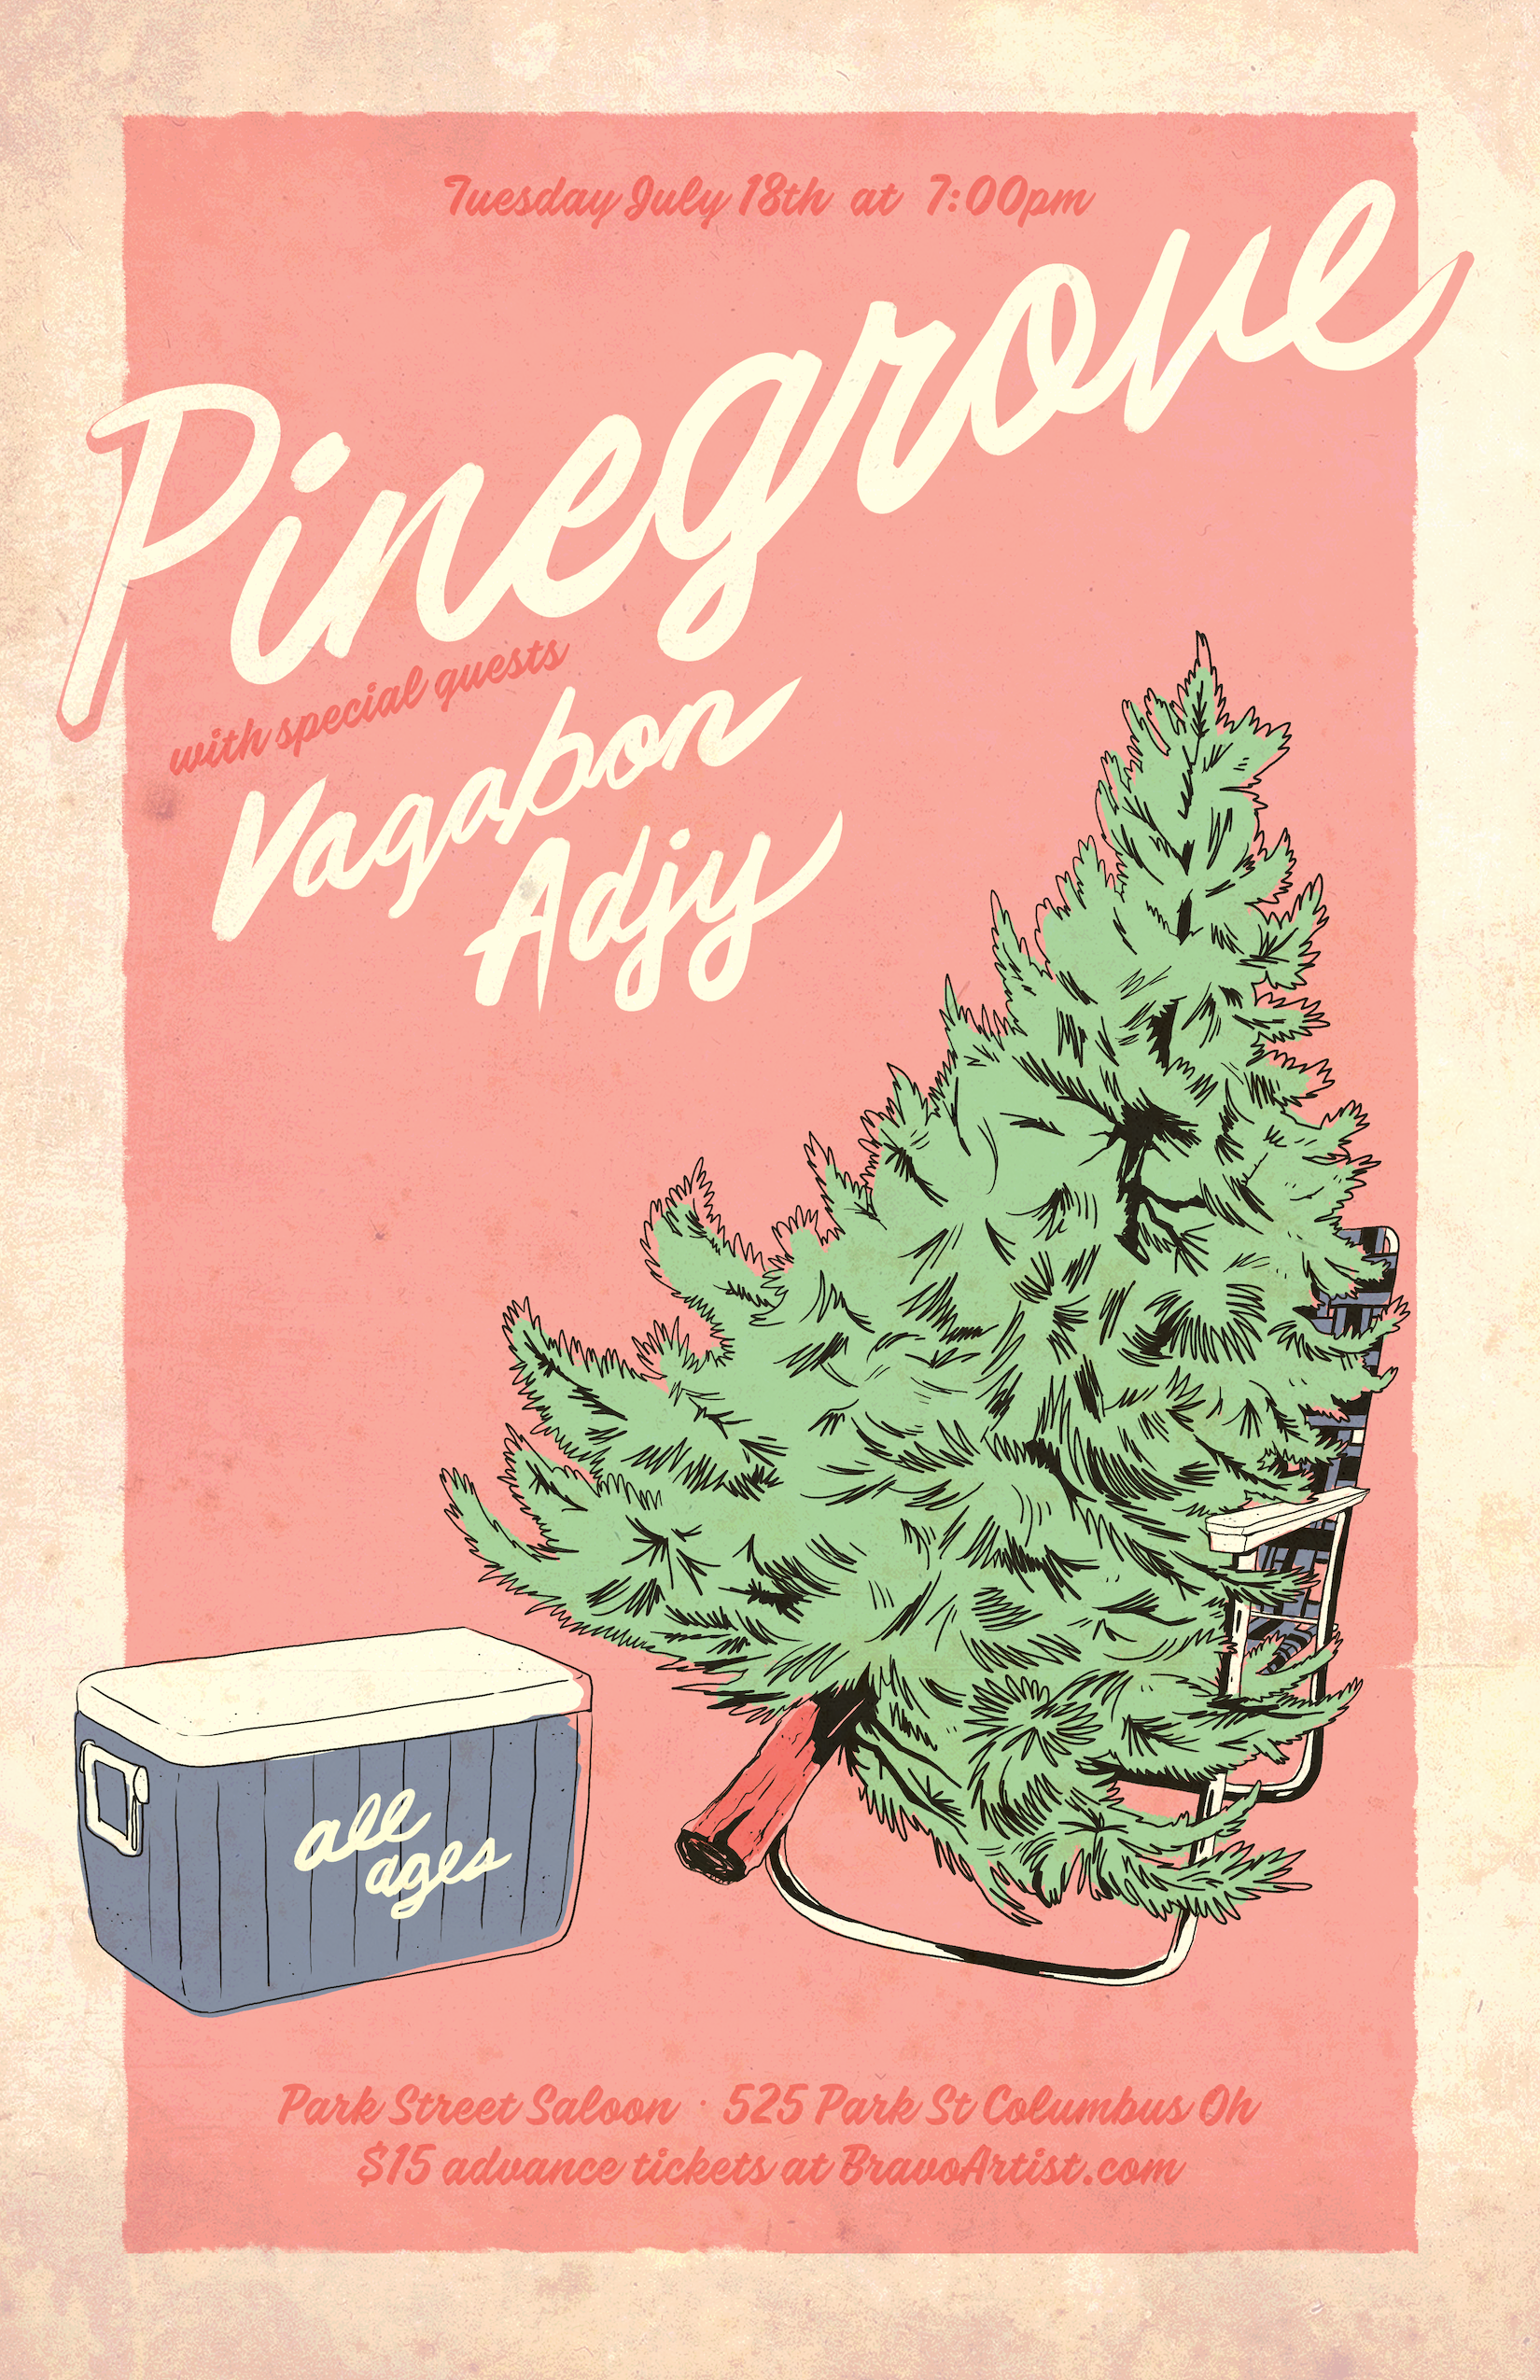 Pinegrove_web.png